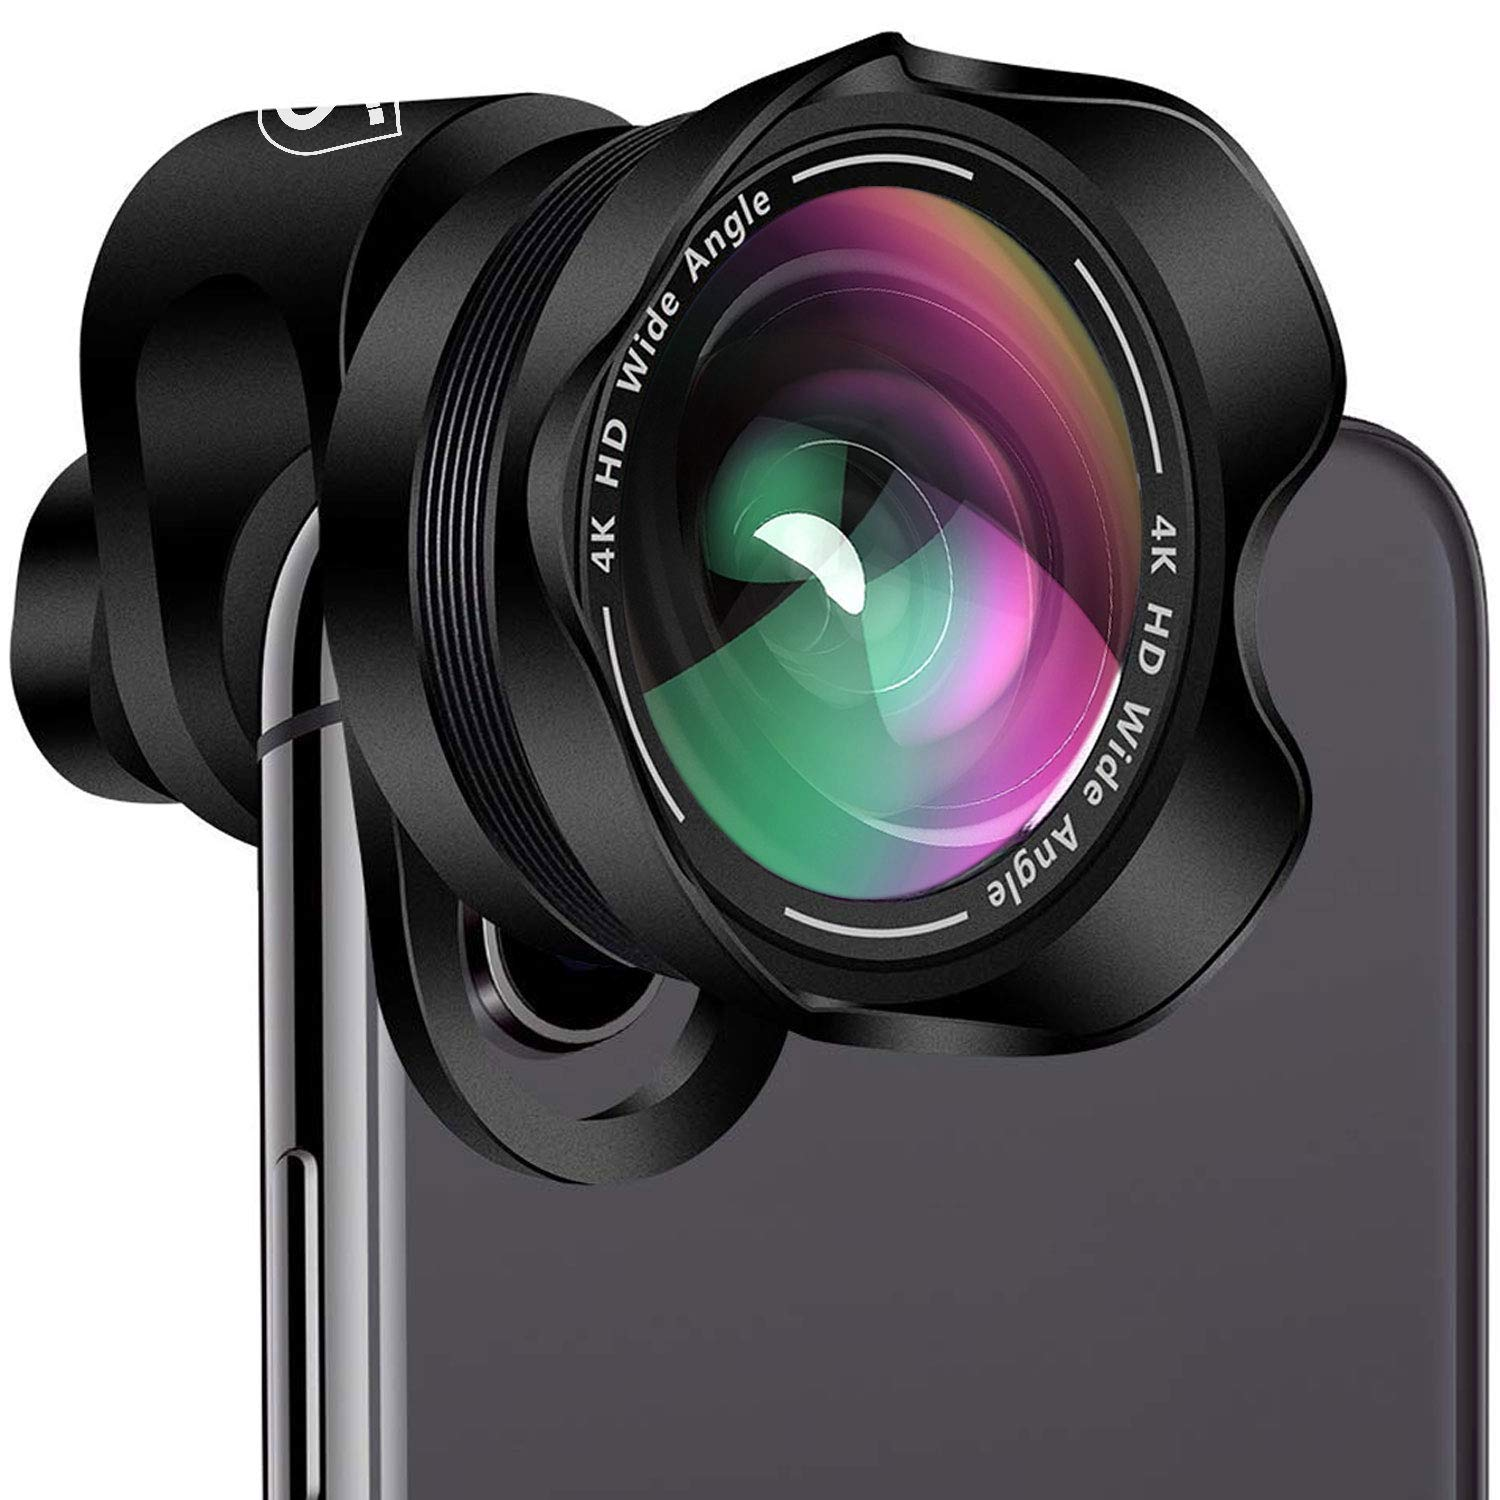 Phone Camera Lens Kit - 5 in 1 Universal Set for iPhone, Samsung, Smartphones and Tablets - 2X Zoom Telephoto, 198 Fisheye, 0.63X Wide Angle, 15X Macro, CPL Filter Lens for Cell Phones SVIT